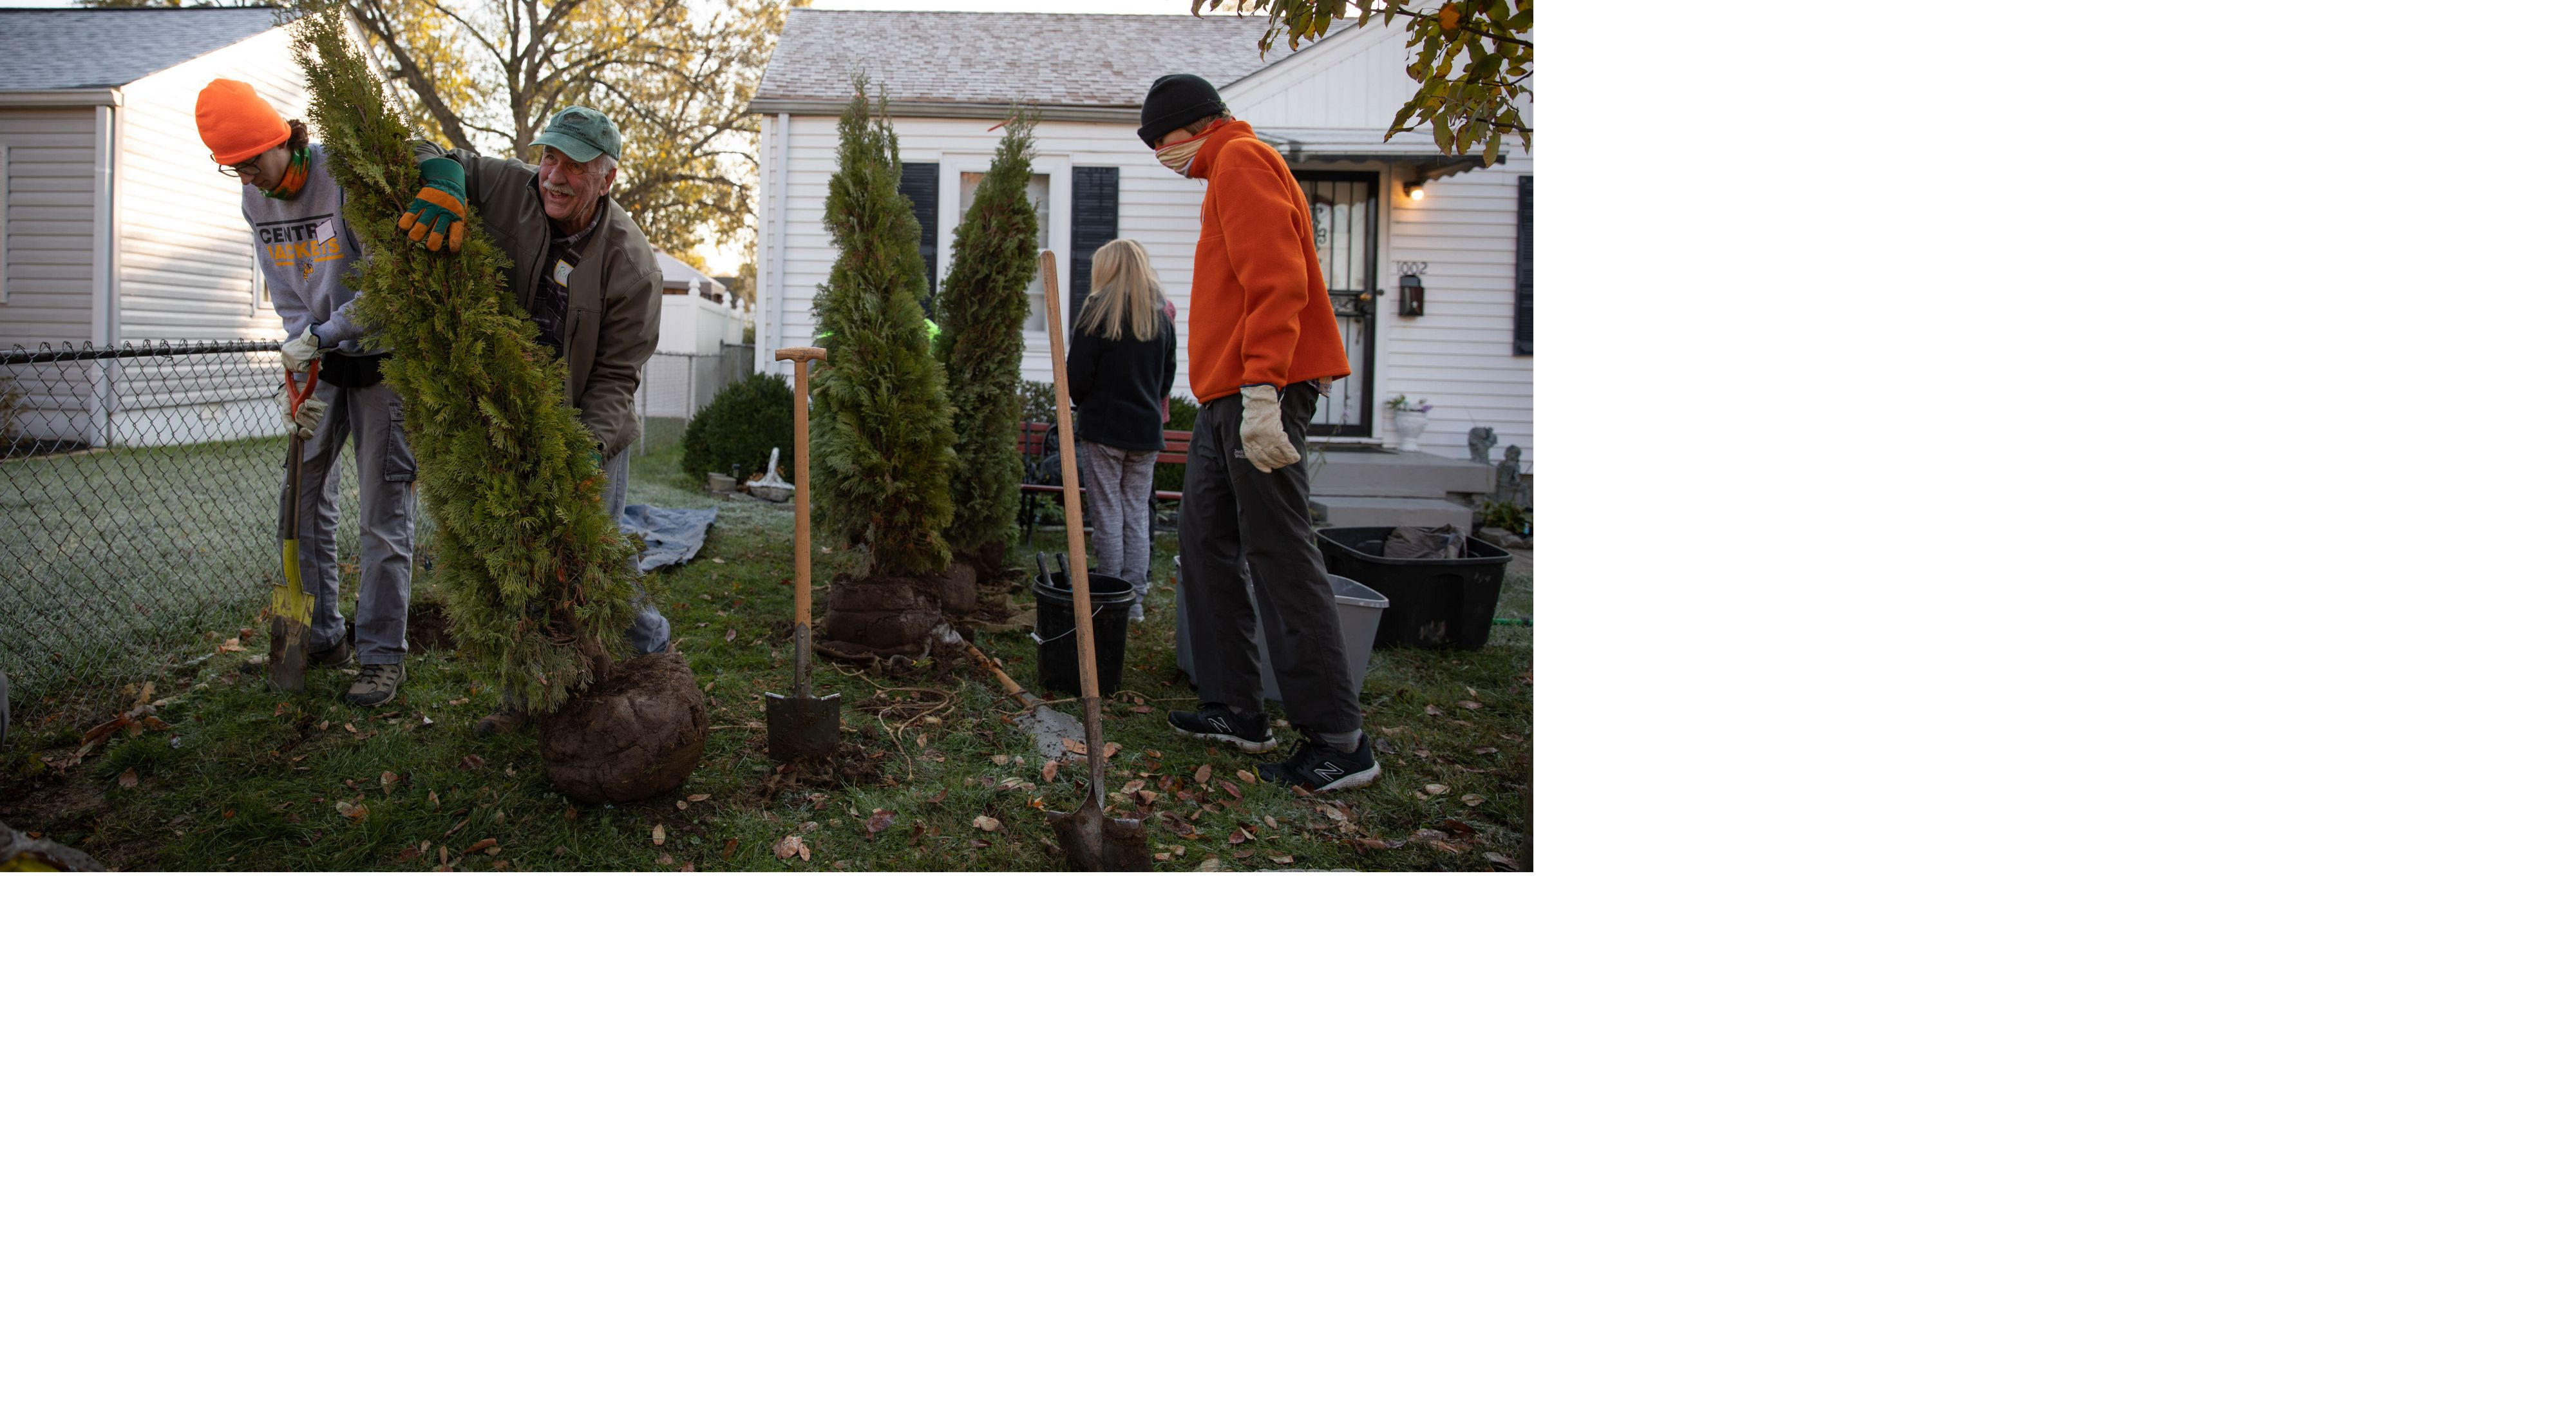 A group planting trees in a residential area.